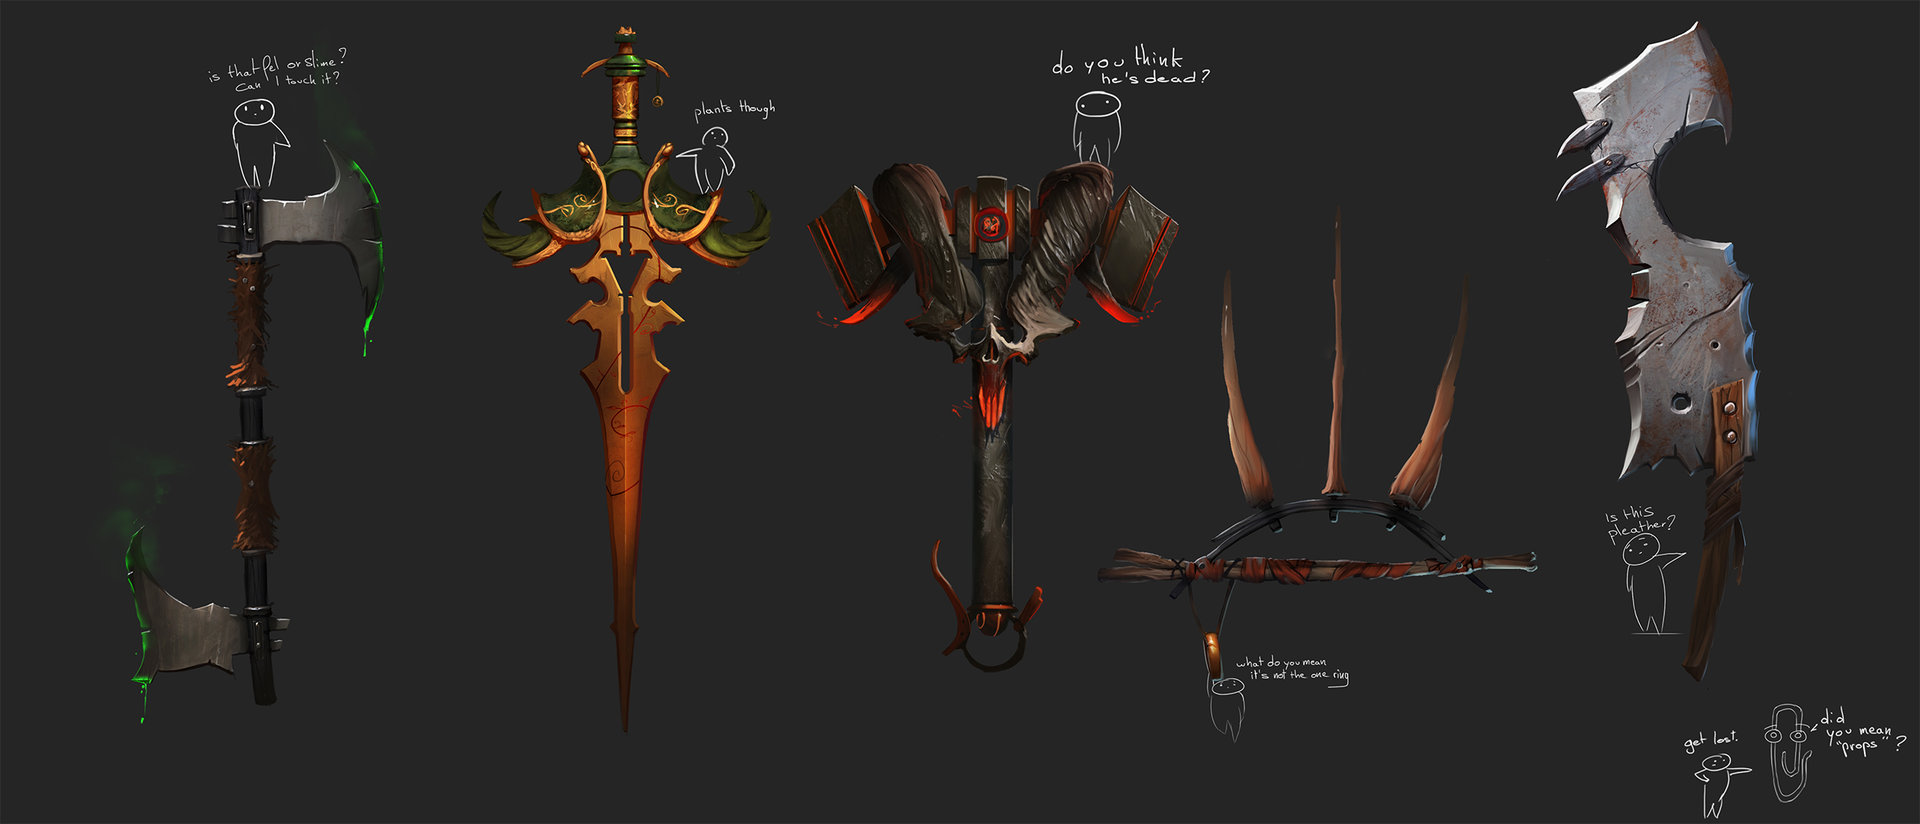 Fantasy weapons: a personal art work. Look for a cameo from the Microsoft Office paperclip.